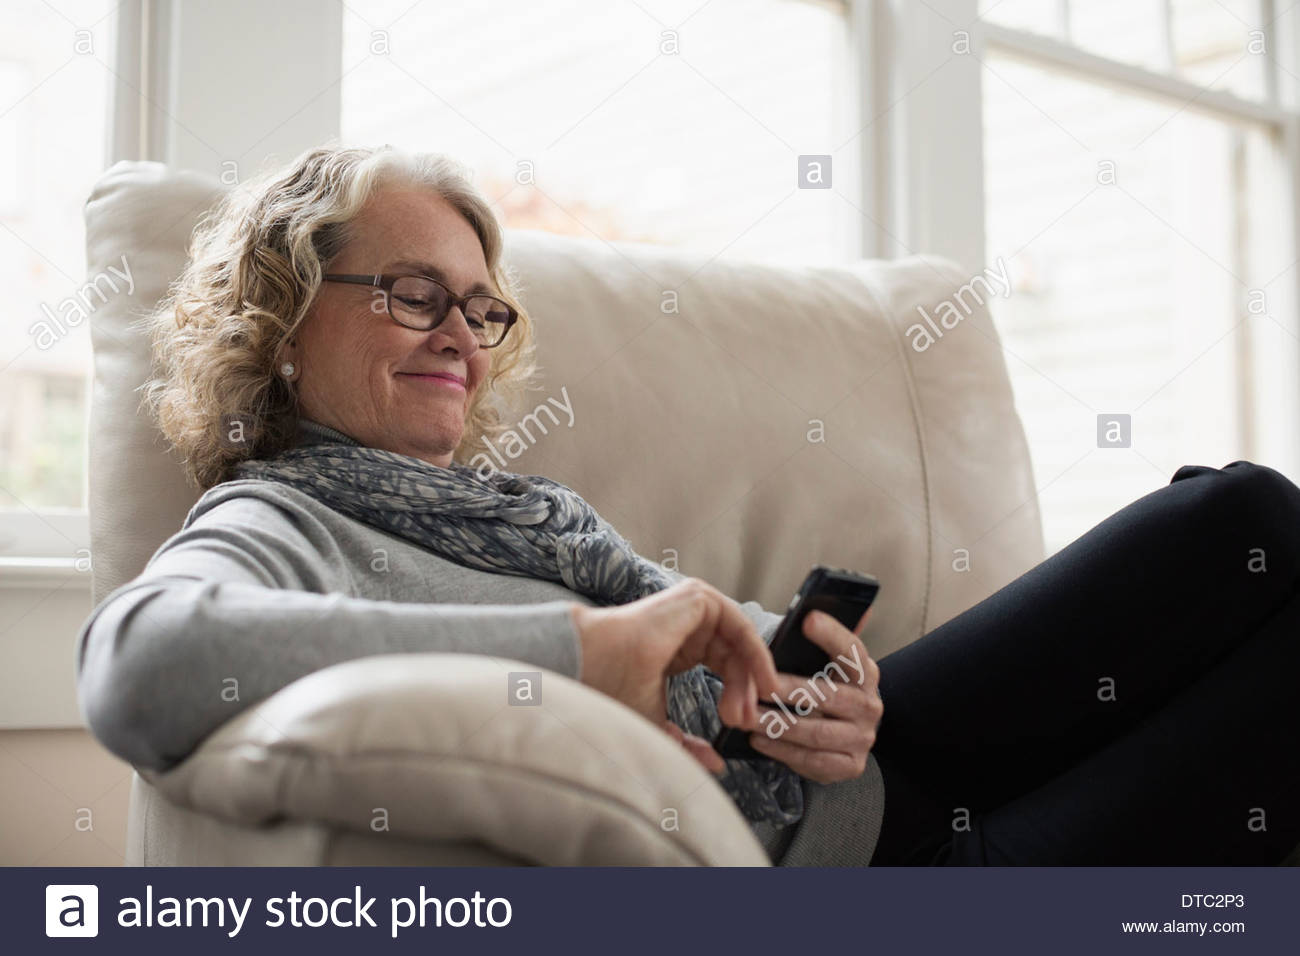 Senior woman relaxing on chair with mobile phone - Stock Image